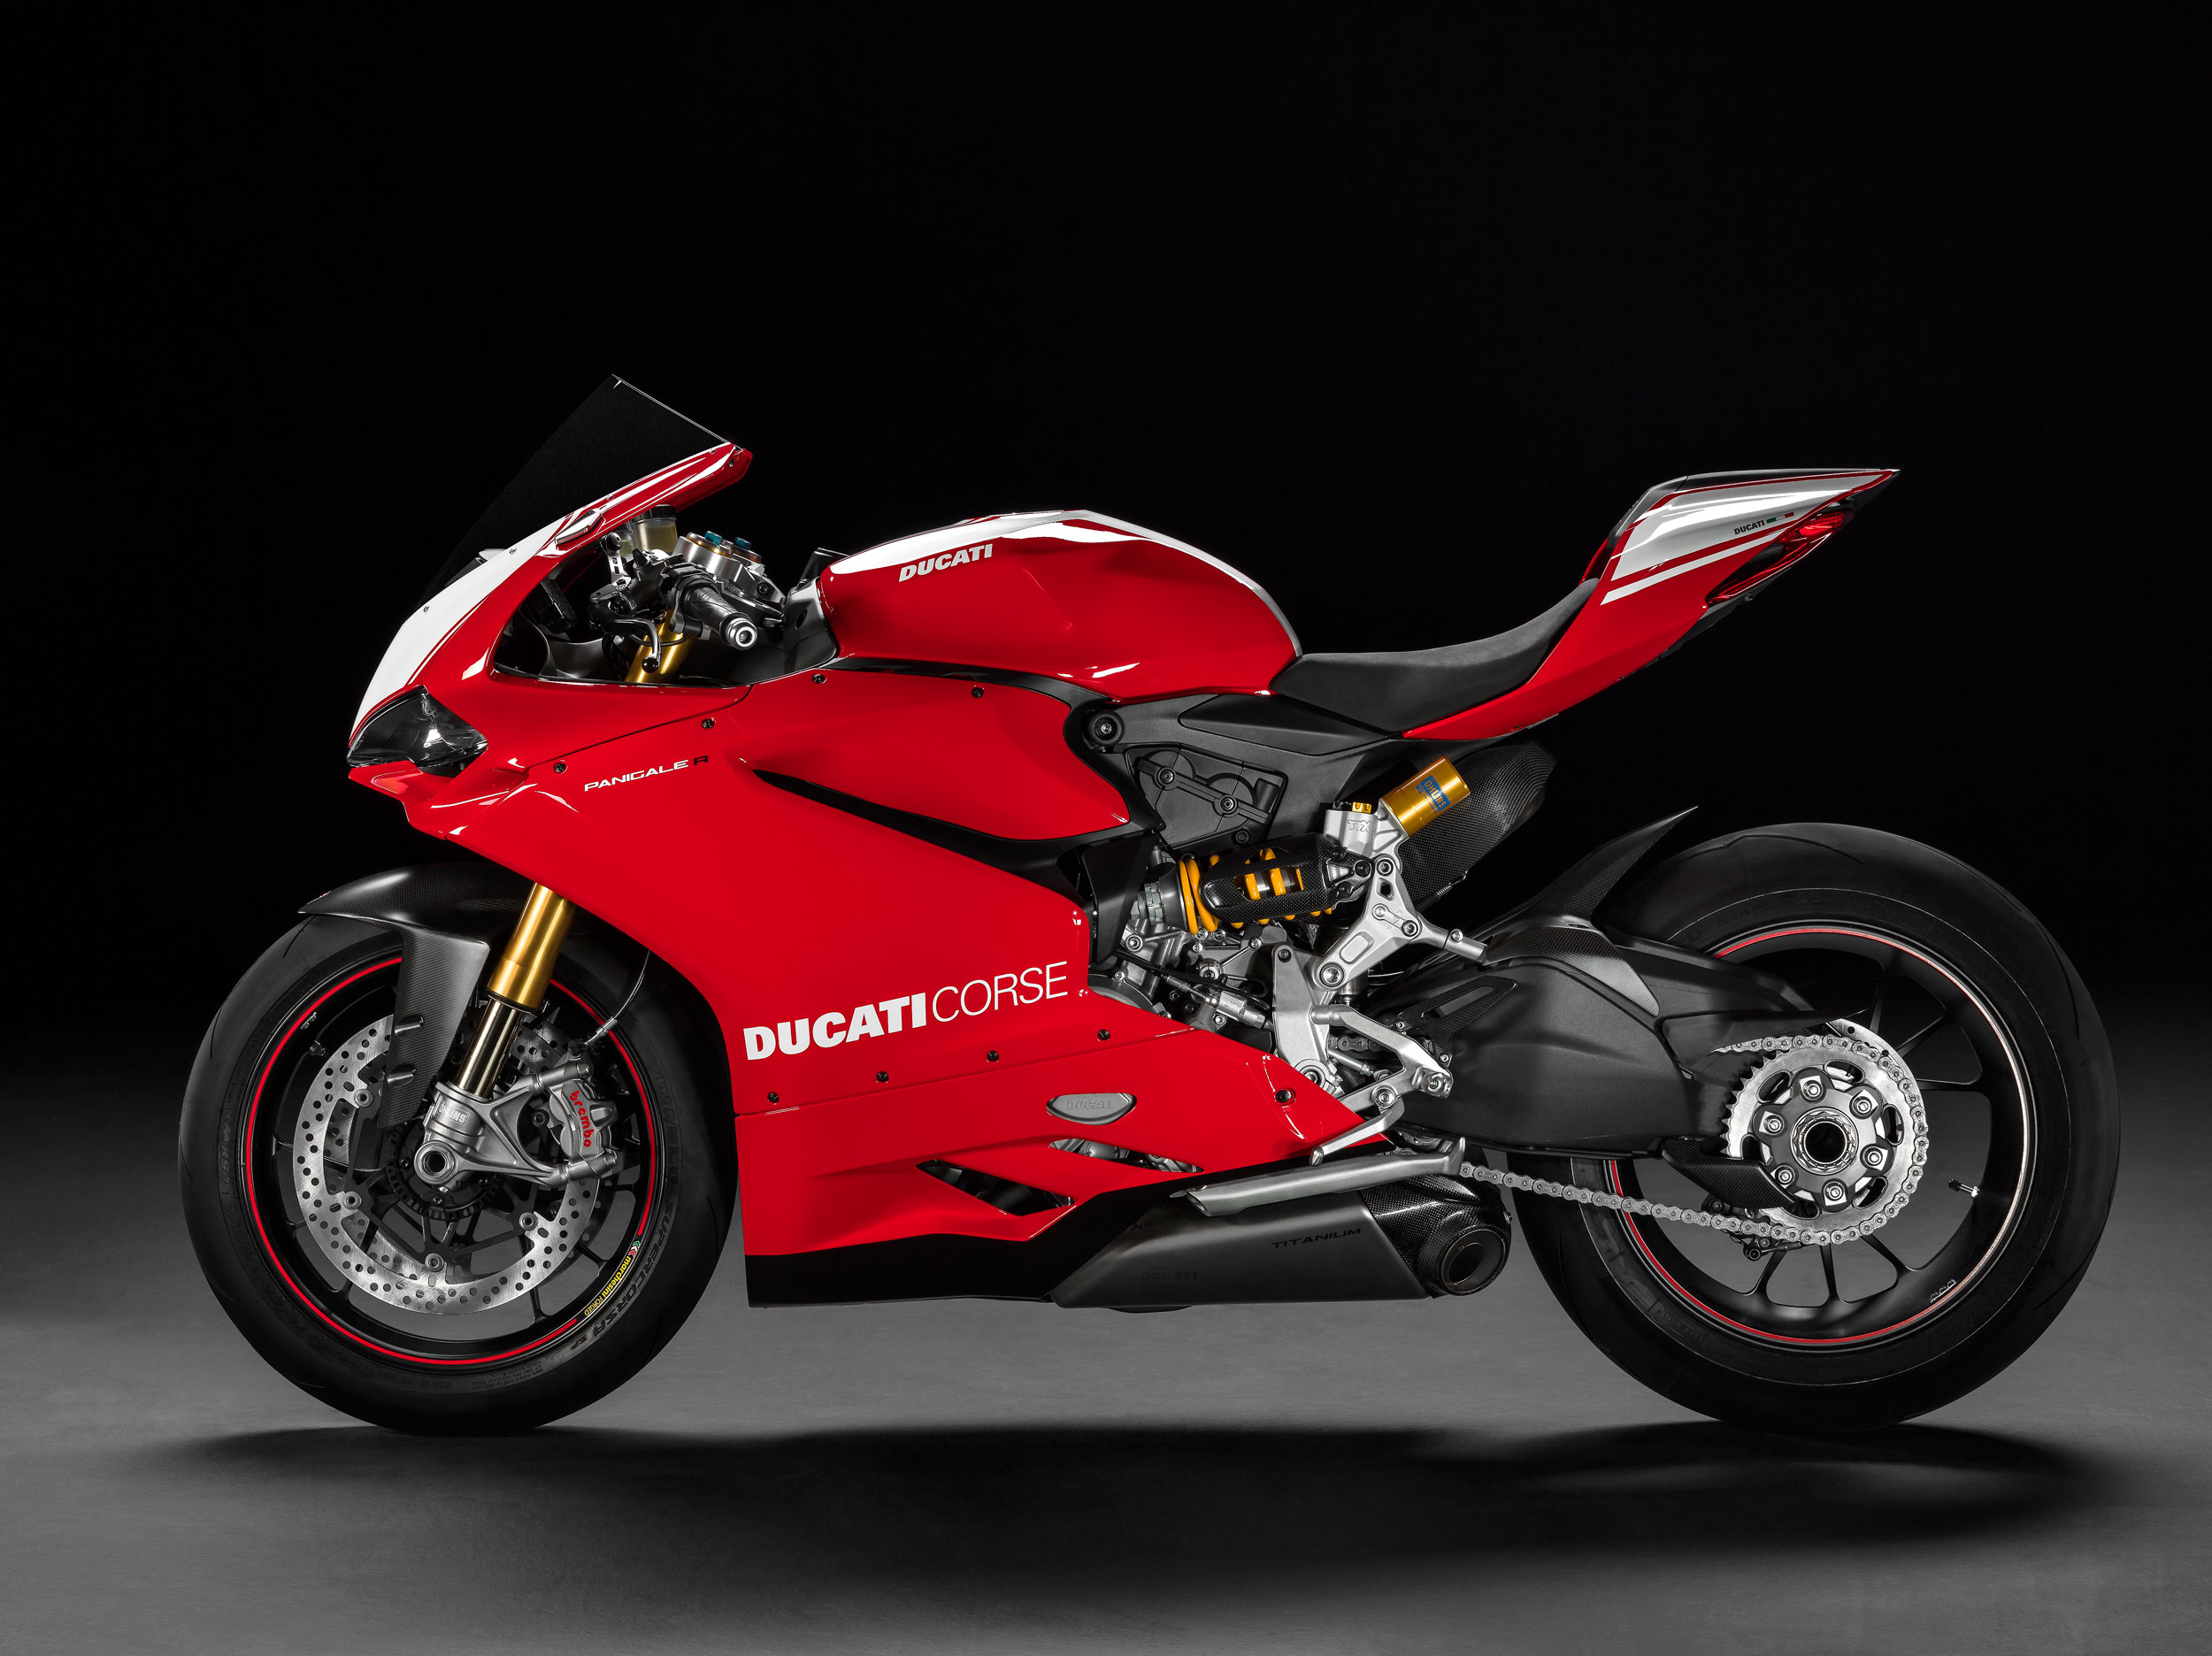 Ducati 1299 Panigale S 4k Wallpapers: Ducati 1299 Panigale S Wallpapers